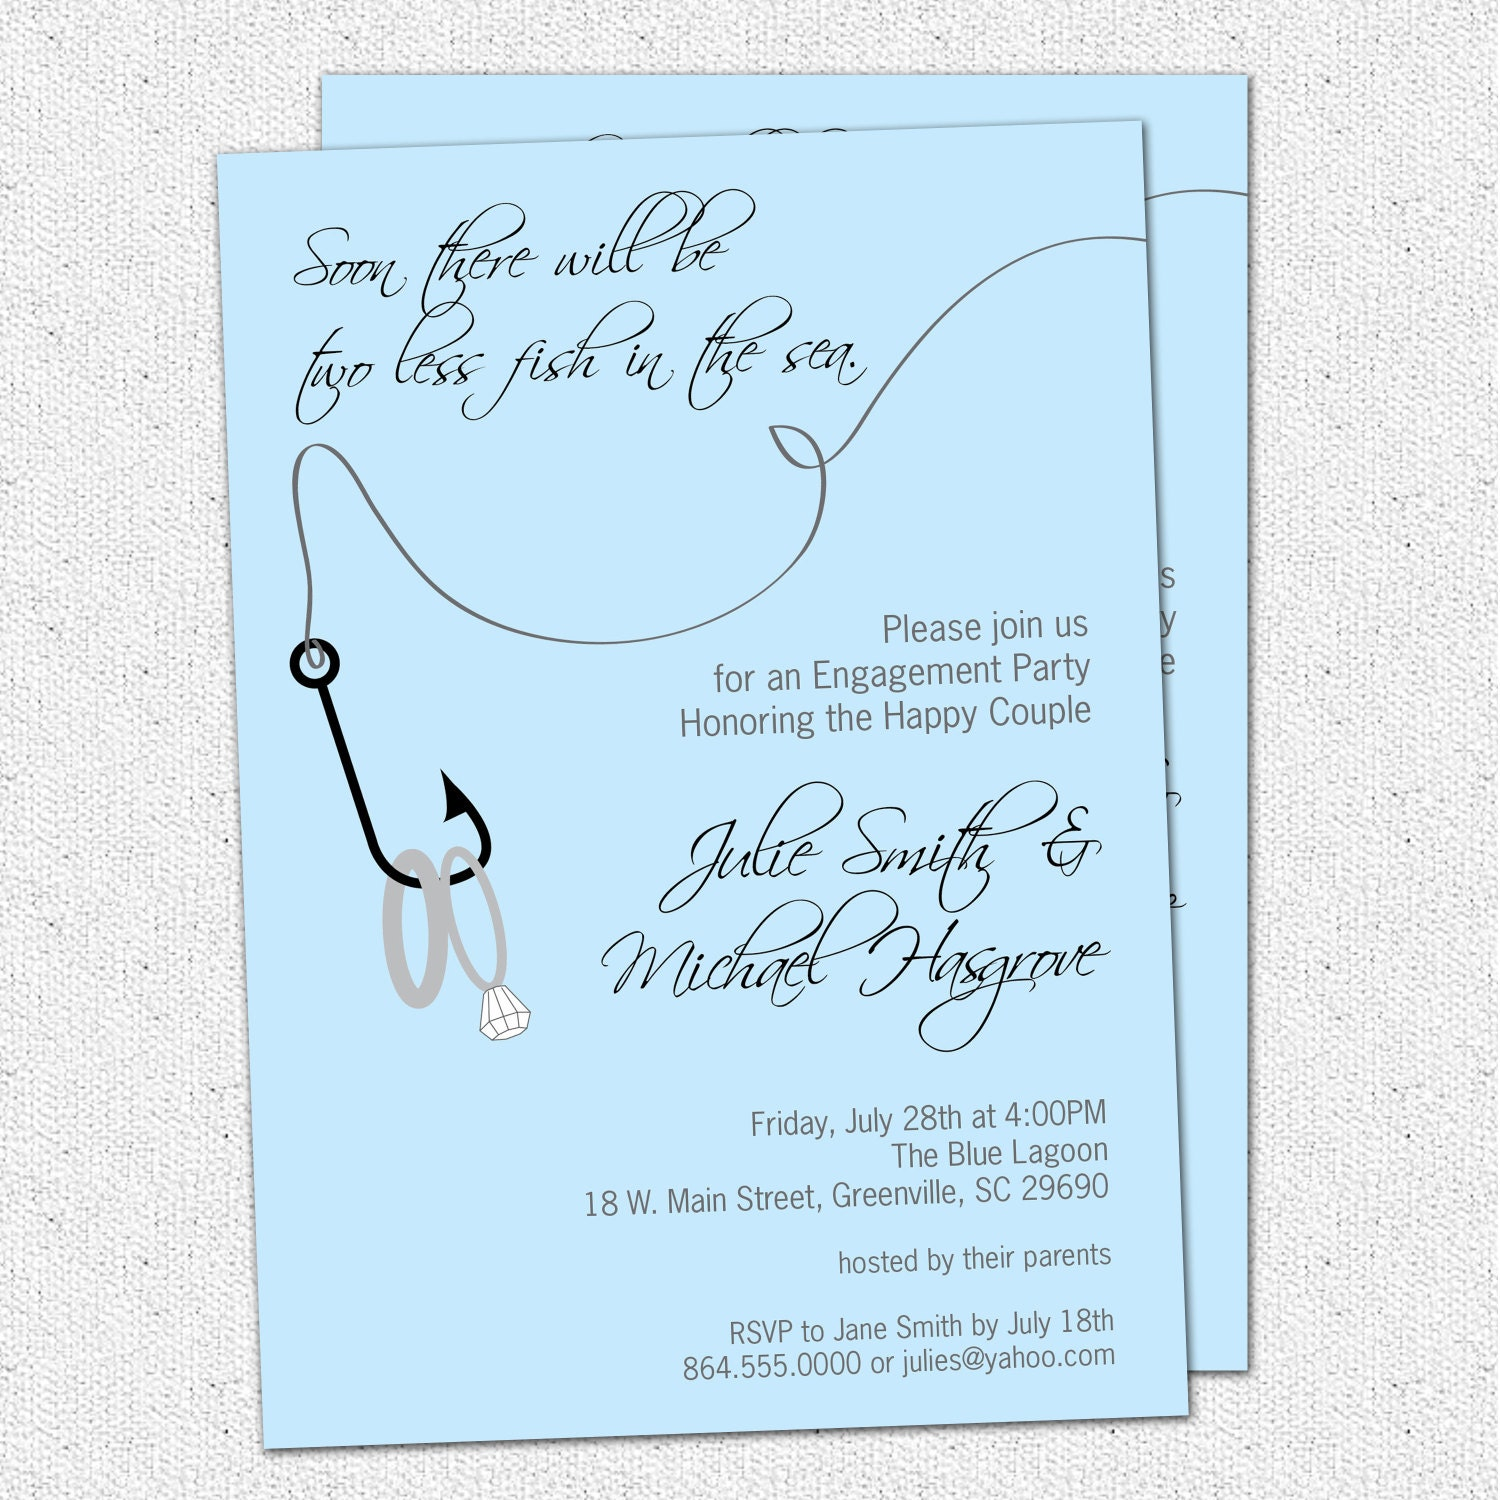 Superb image inside free printable engagement party invitations